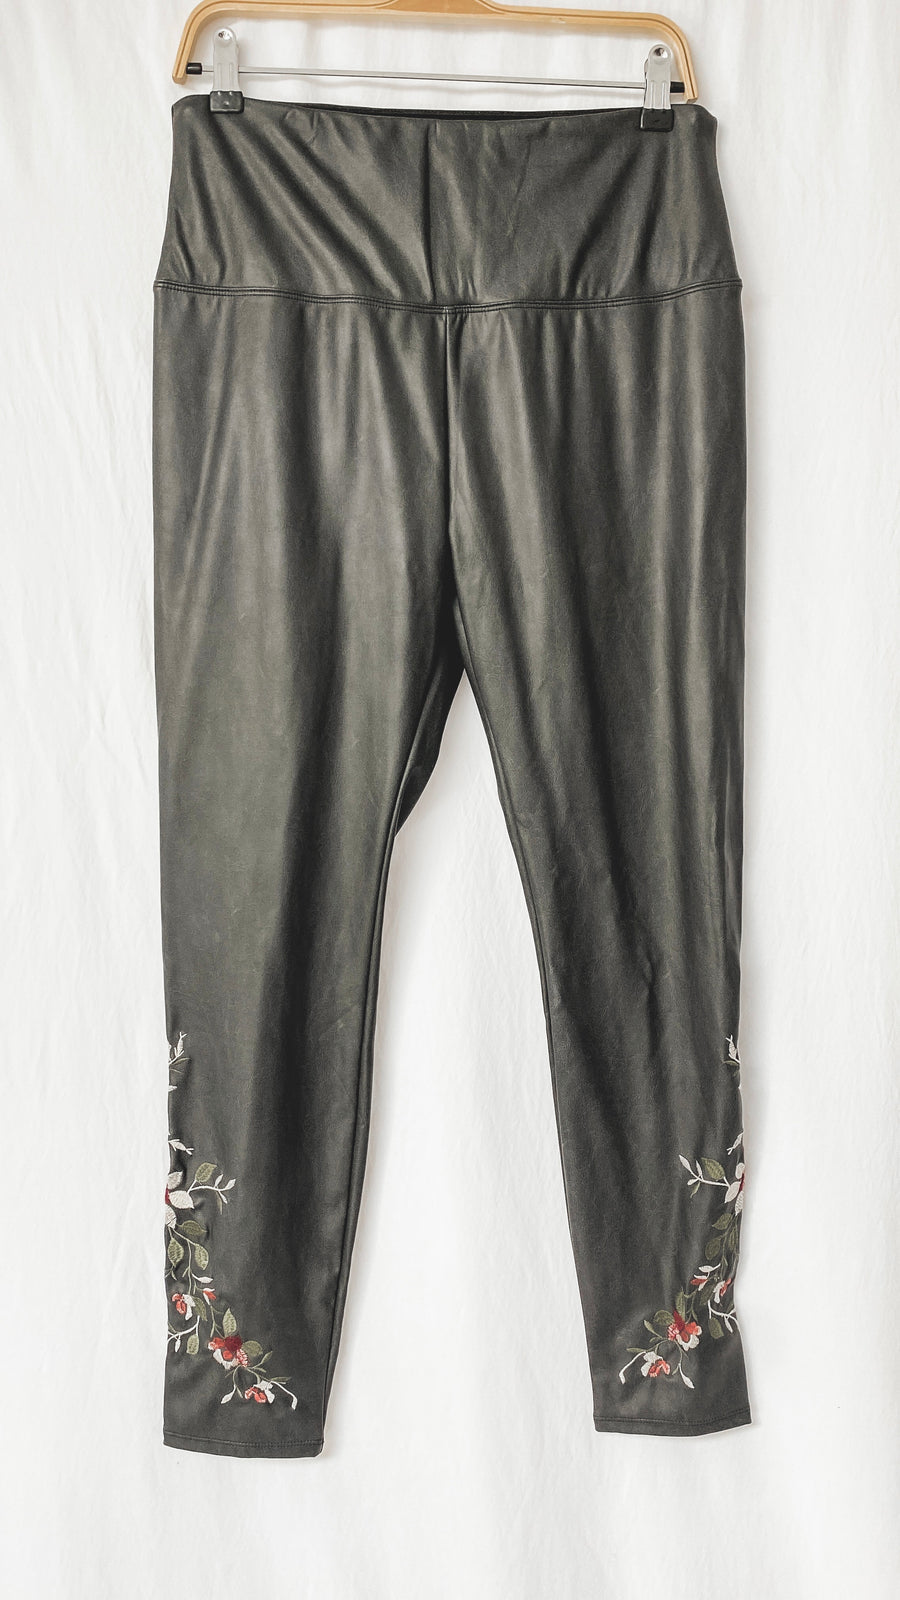 Lysse Faux Leather Embroidered Legging Pants (L)